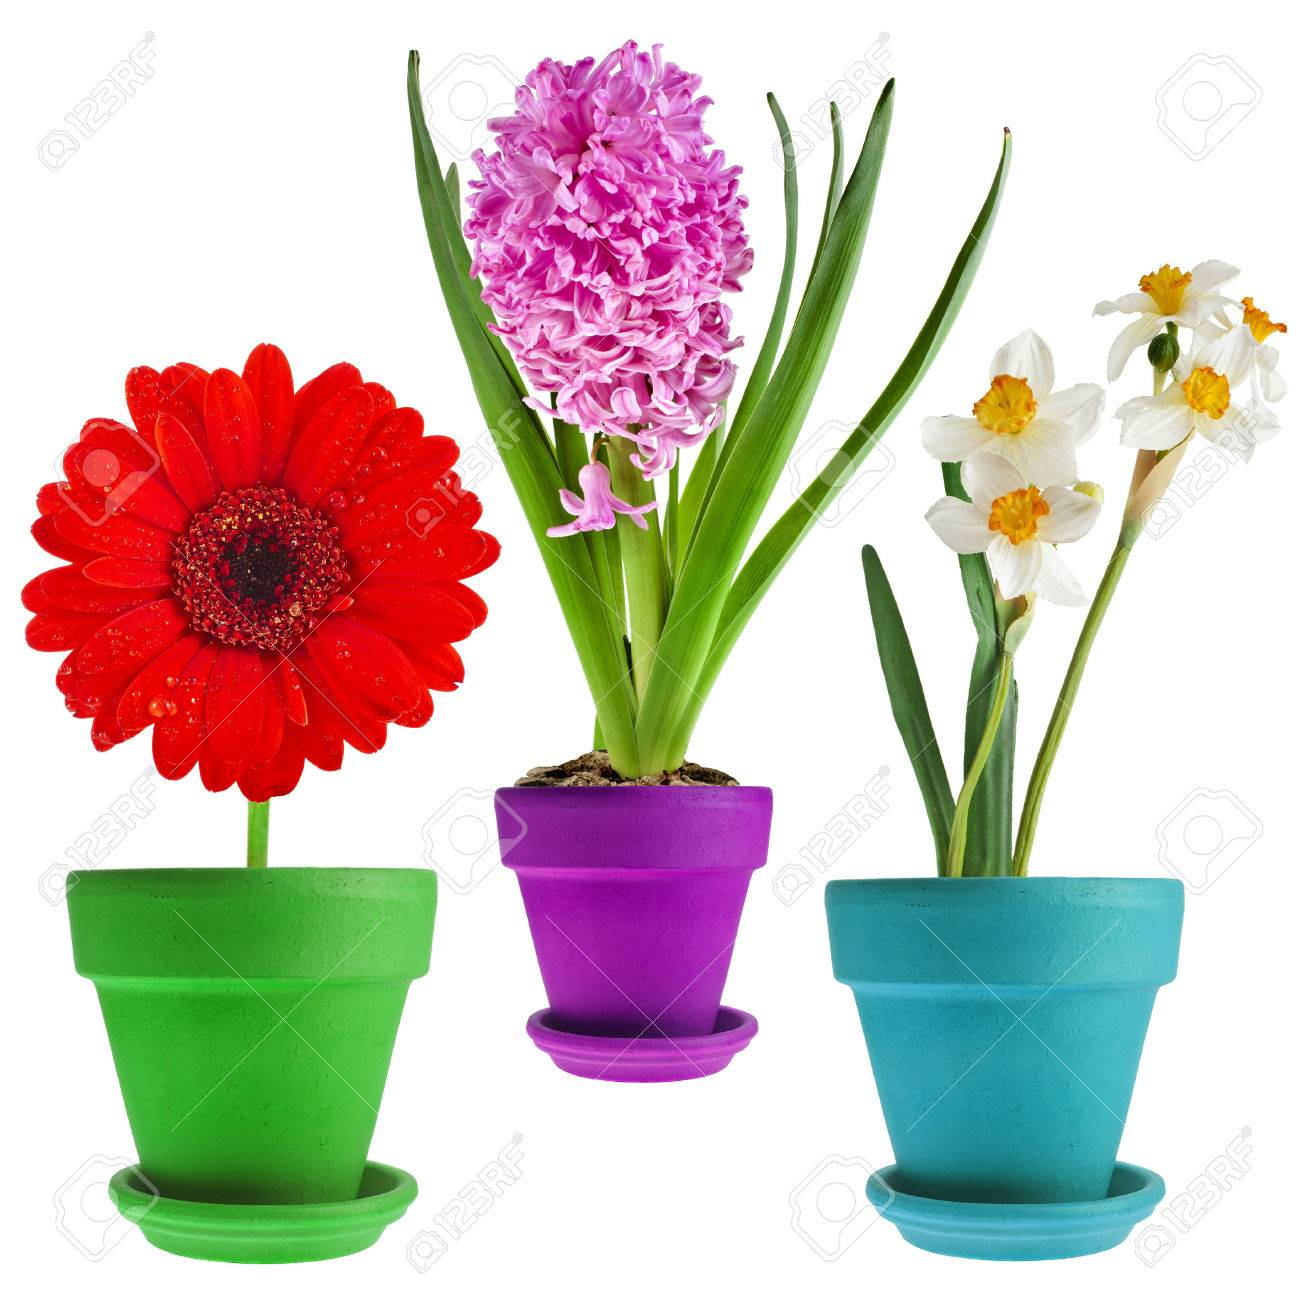 Collection set of spring flower bouquet potted isolated on white collection set of spring flower bouquet potted isolated on white background stock photo 29436206 mightylinksfo